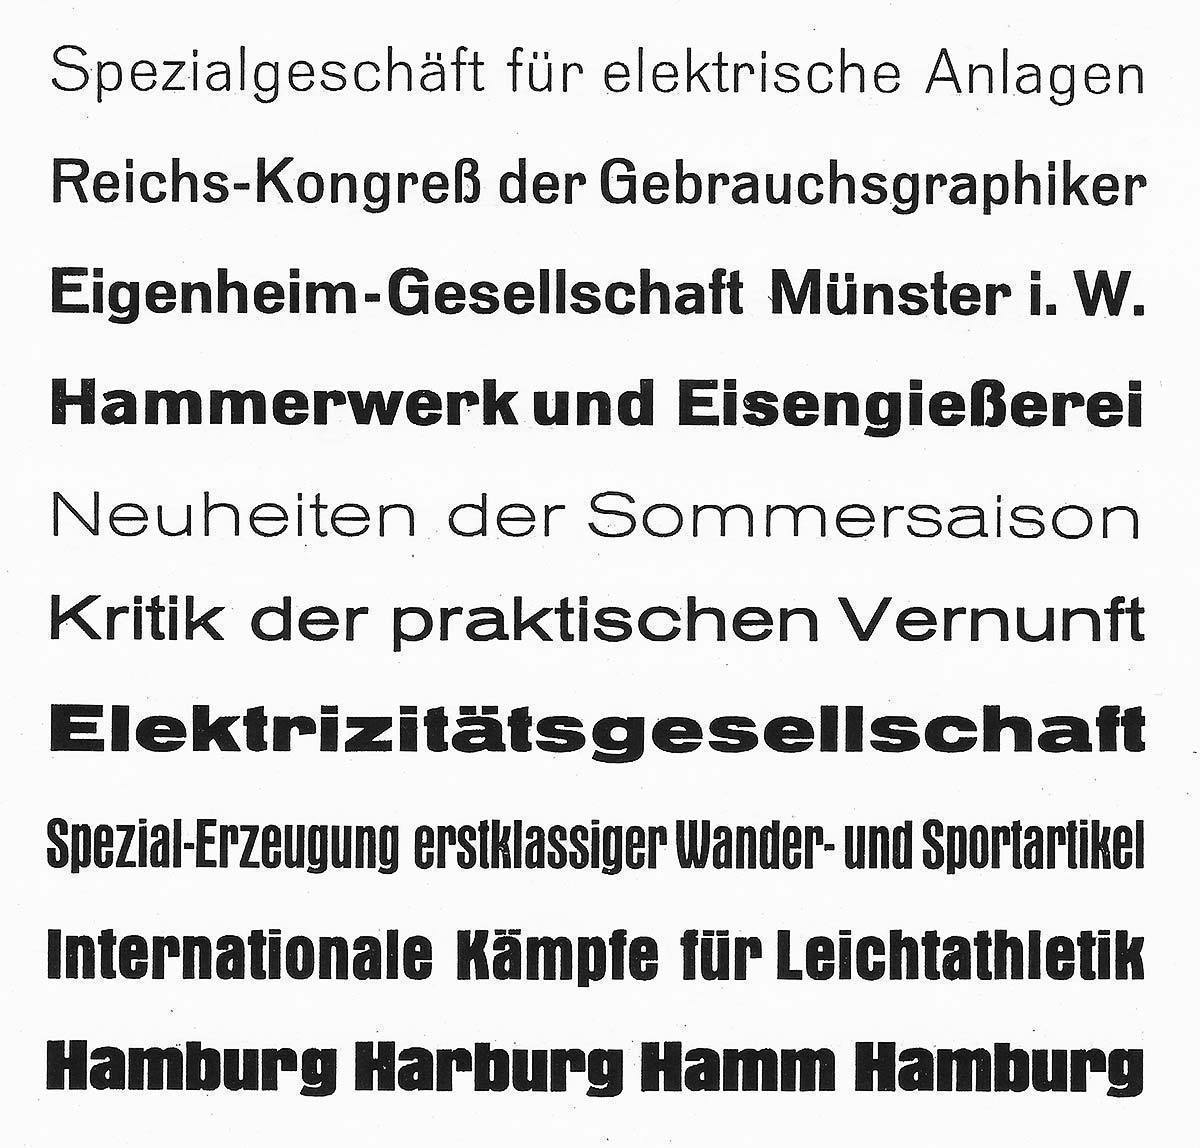 Examples of the Grotesk-Serie from a 1925 catalogue of available typefaces issued by the Schriftguß AG (formerly known as Brüder Butter) in Dresden-Neustadt. The overview displays the following weights from top to bottom: Planeta (light), Saturn (regular), Jupiter (medium), Neptun (bold), Uranus (light extended), Merkur (regular extended), Mars (bold extended), Sirius (compressed medium), Orion (compressed bold) and Pallas (compressed ultra bold).